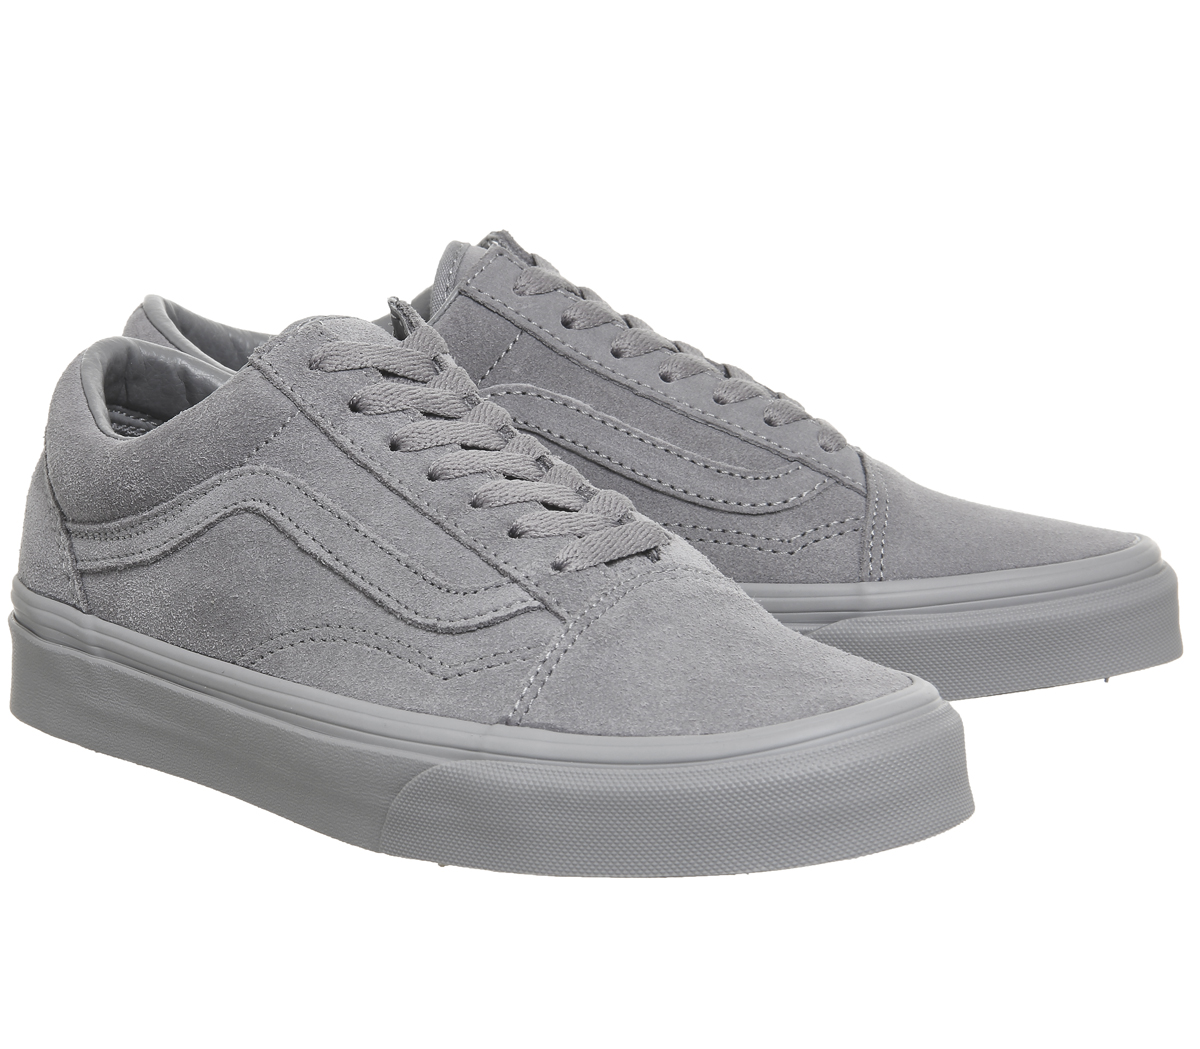 9c80b37ef37b61 Mens Vans Old Skool Trainers FROST GREY SUEDE EXCLUSIVE Trainers ...